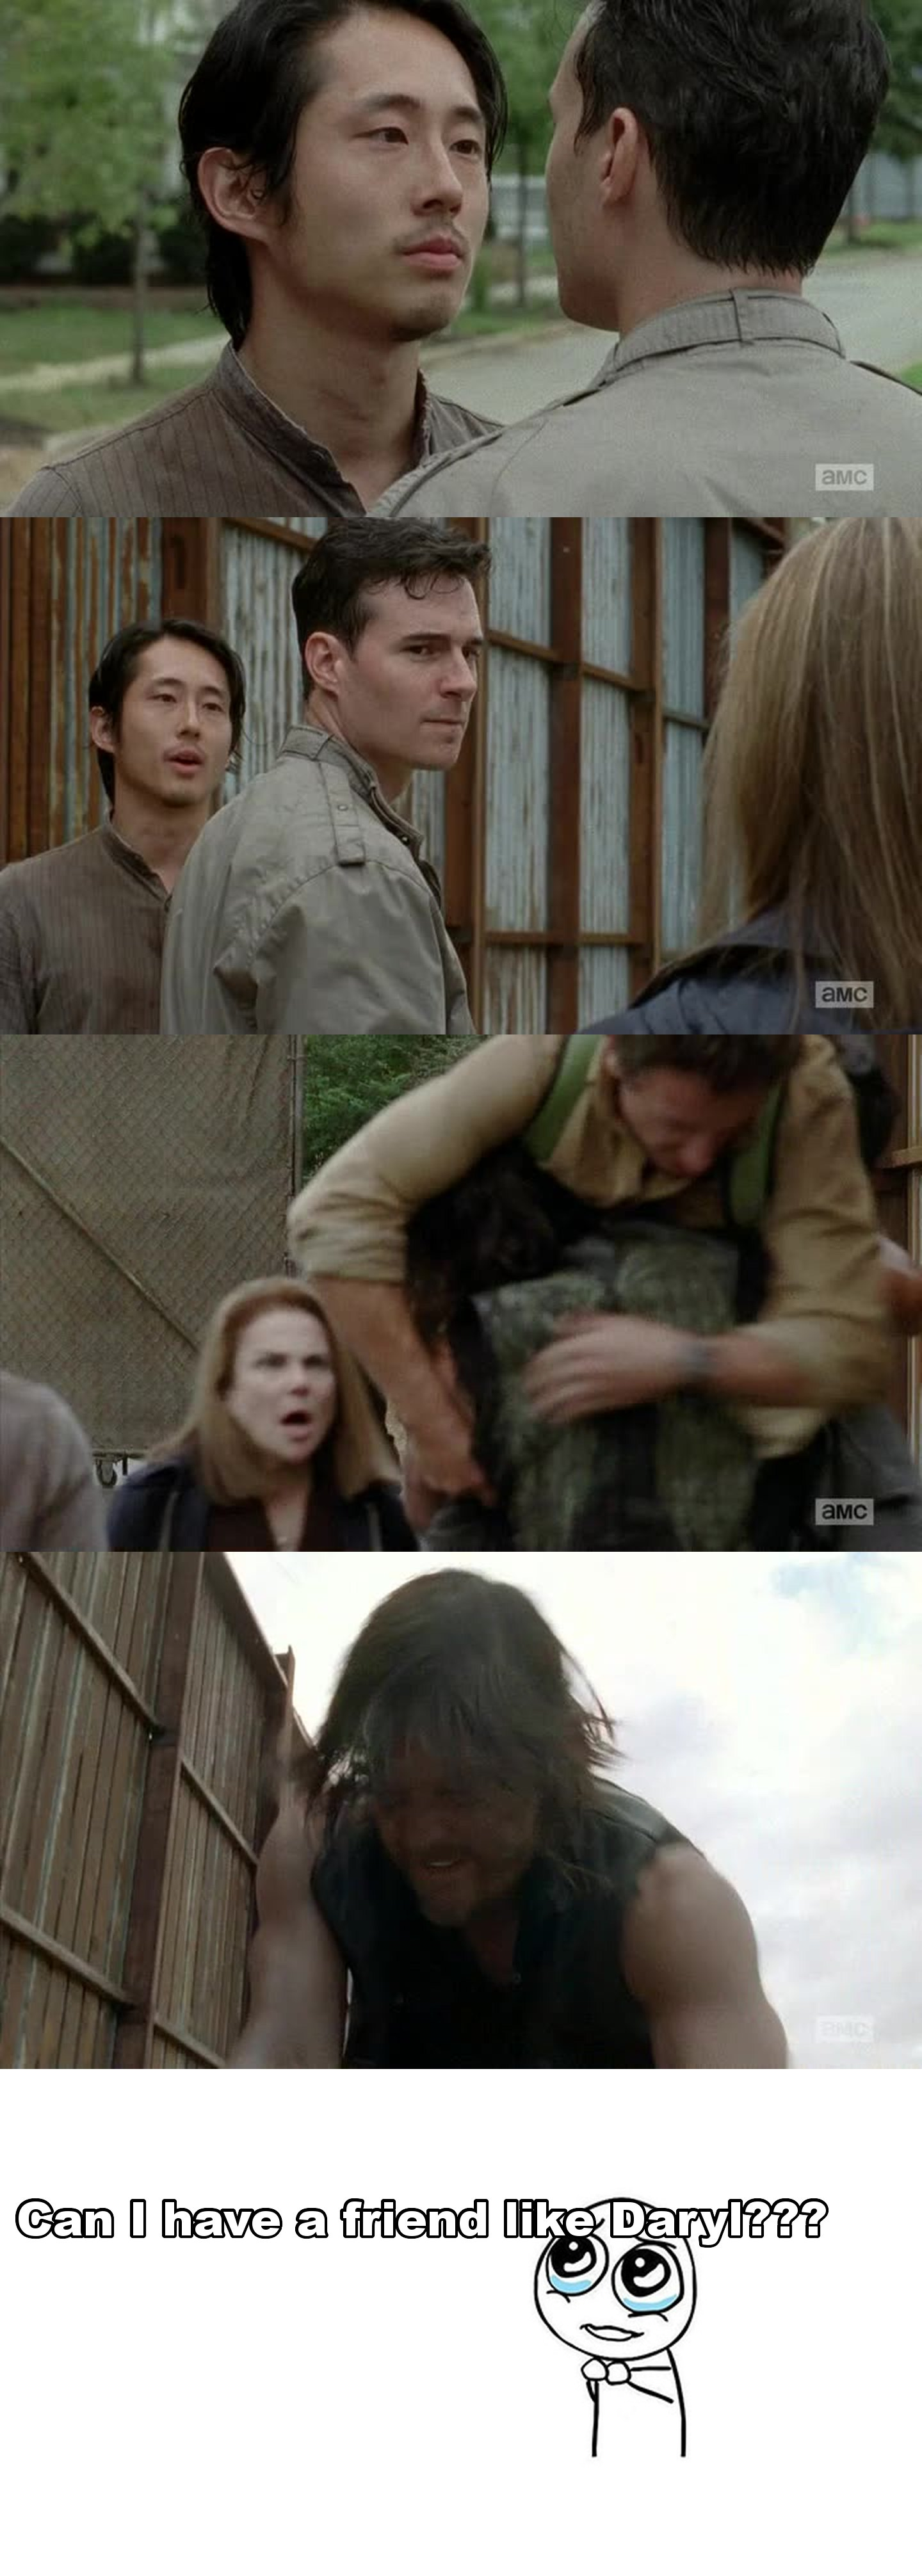 Daryl is badass!!! This scene made me so happy!!